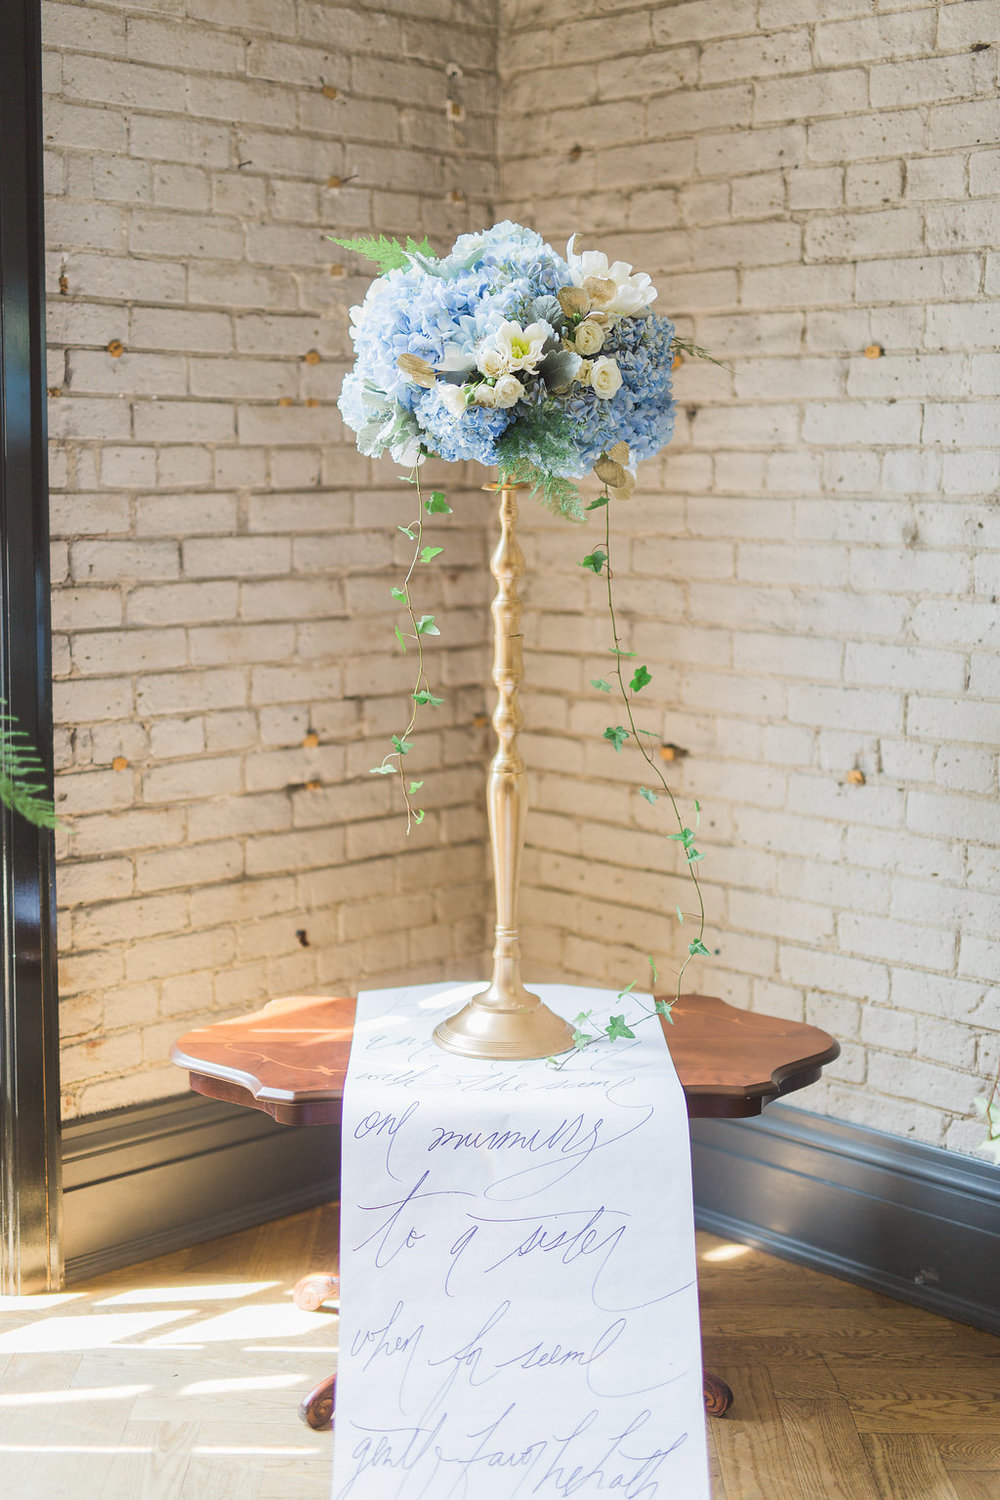 Phoebe Lo Events Toronto Wedding - Storys Building Urban Loft Paper Inspired Wedding 013.jpg